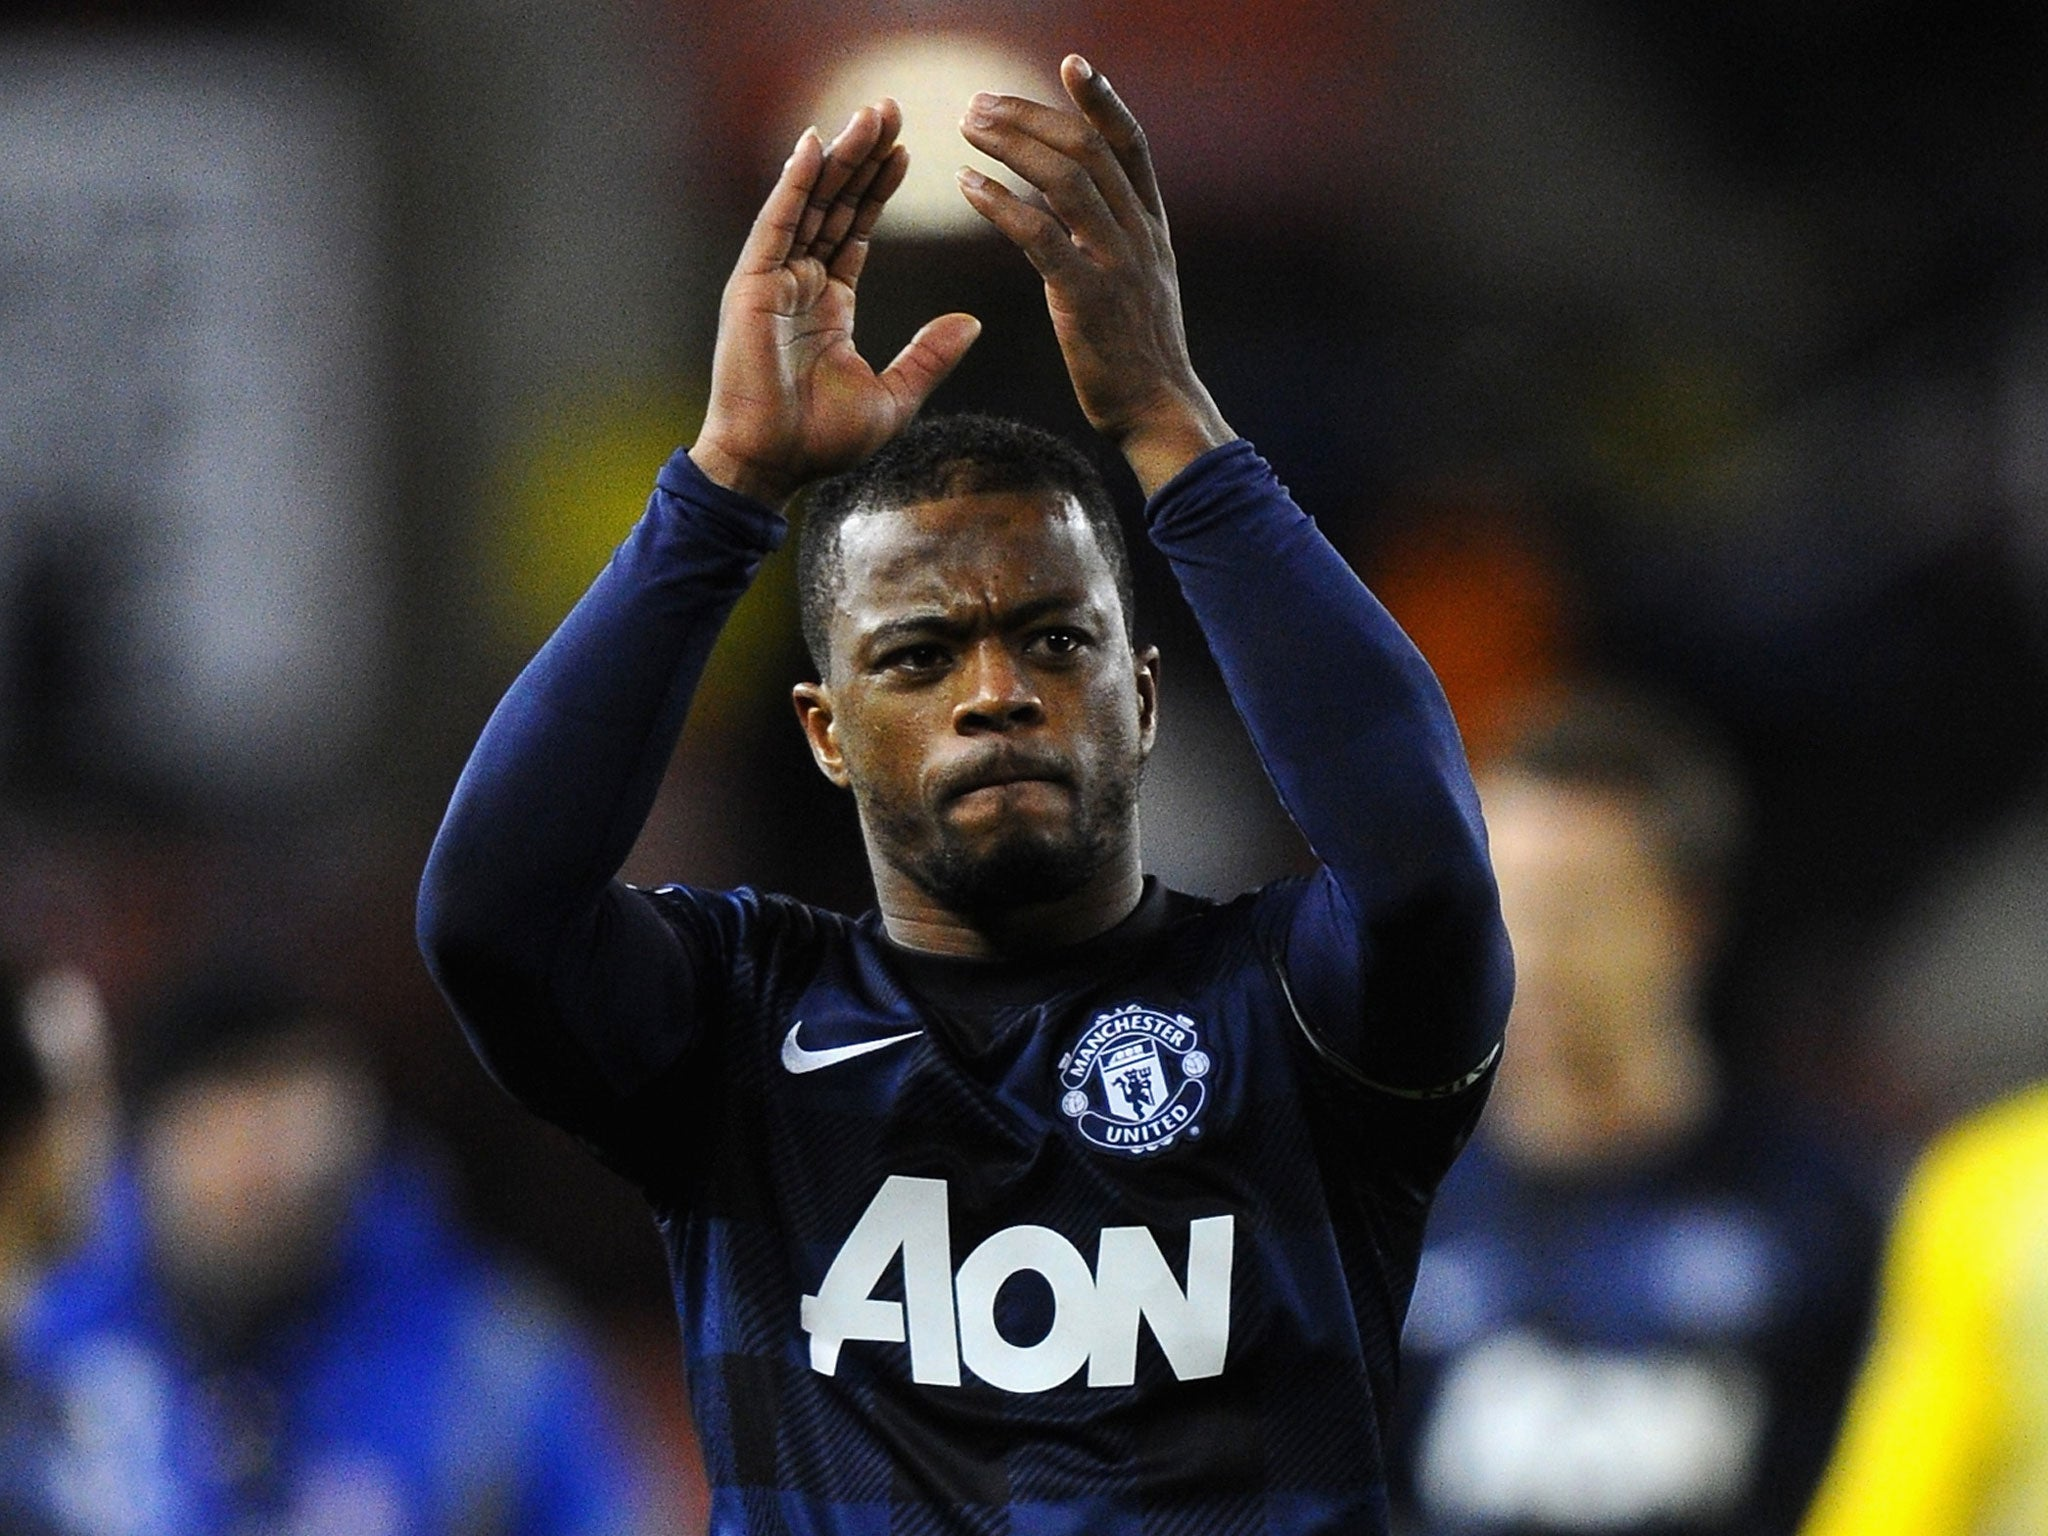 Manchester United v West Ham Patrice Evra identifies the spirit